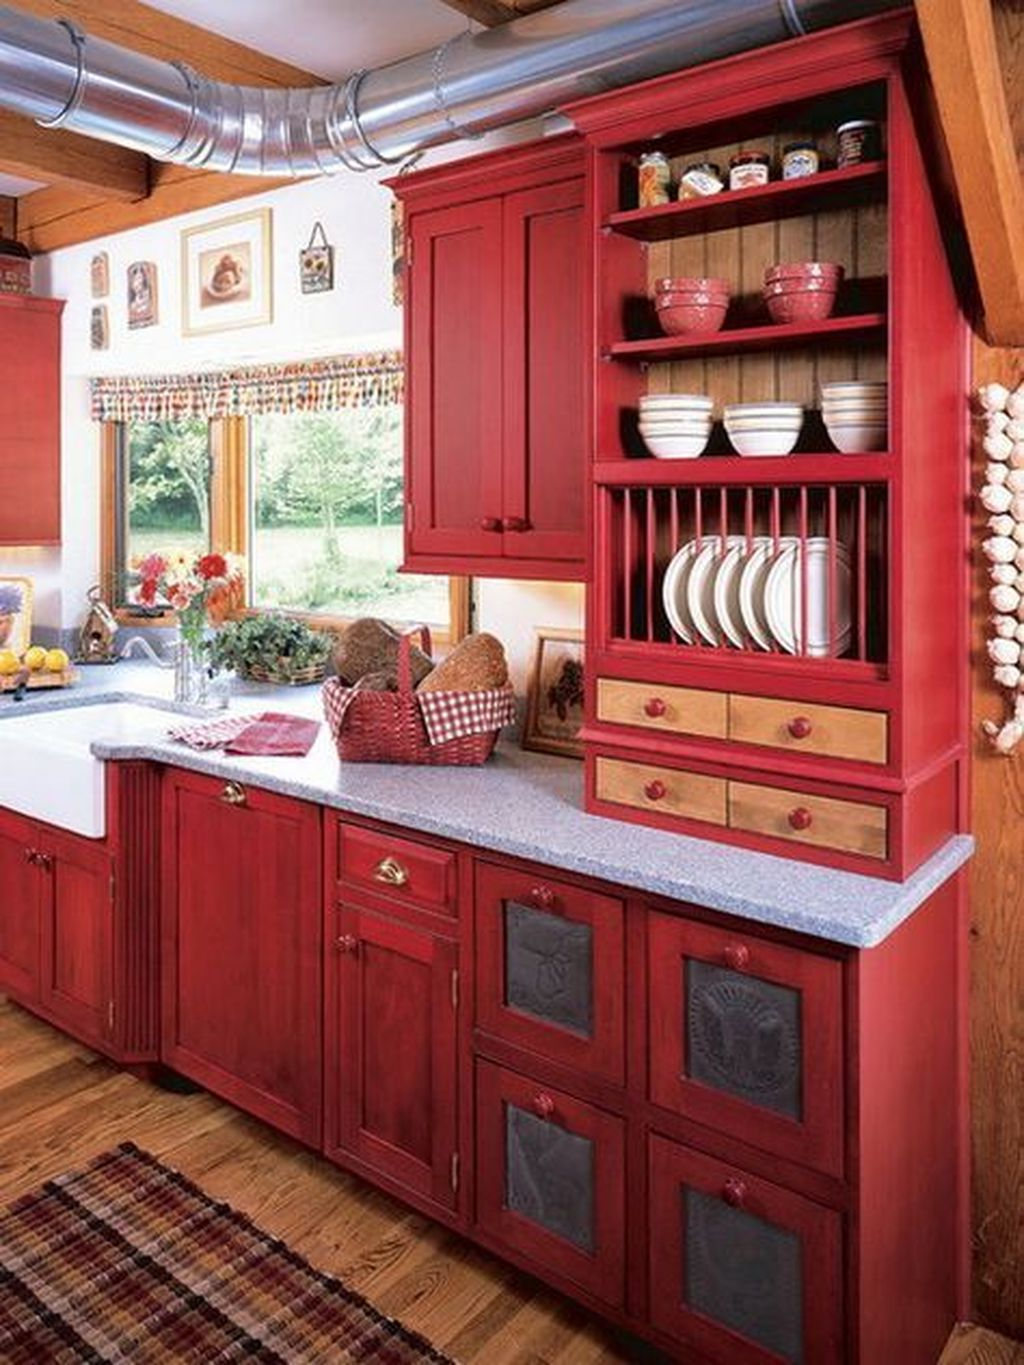 38 inspiring rustic country kitchen ideas to renew your ordinary rh pinterest com